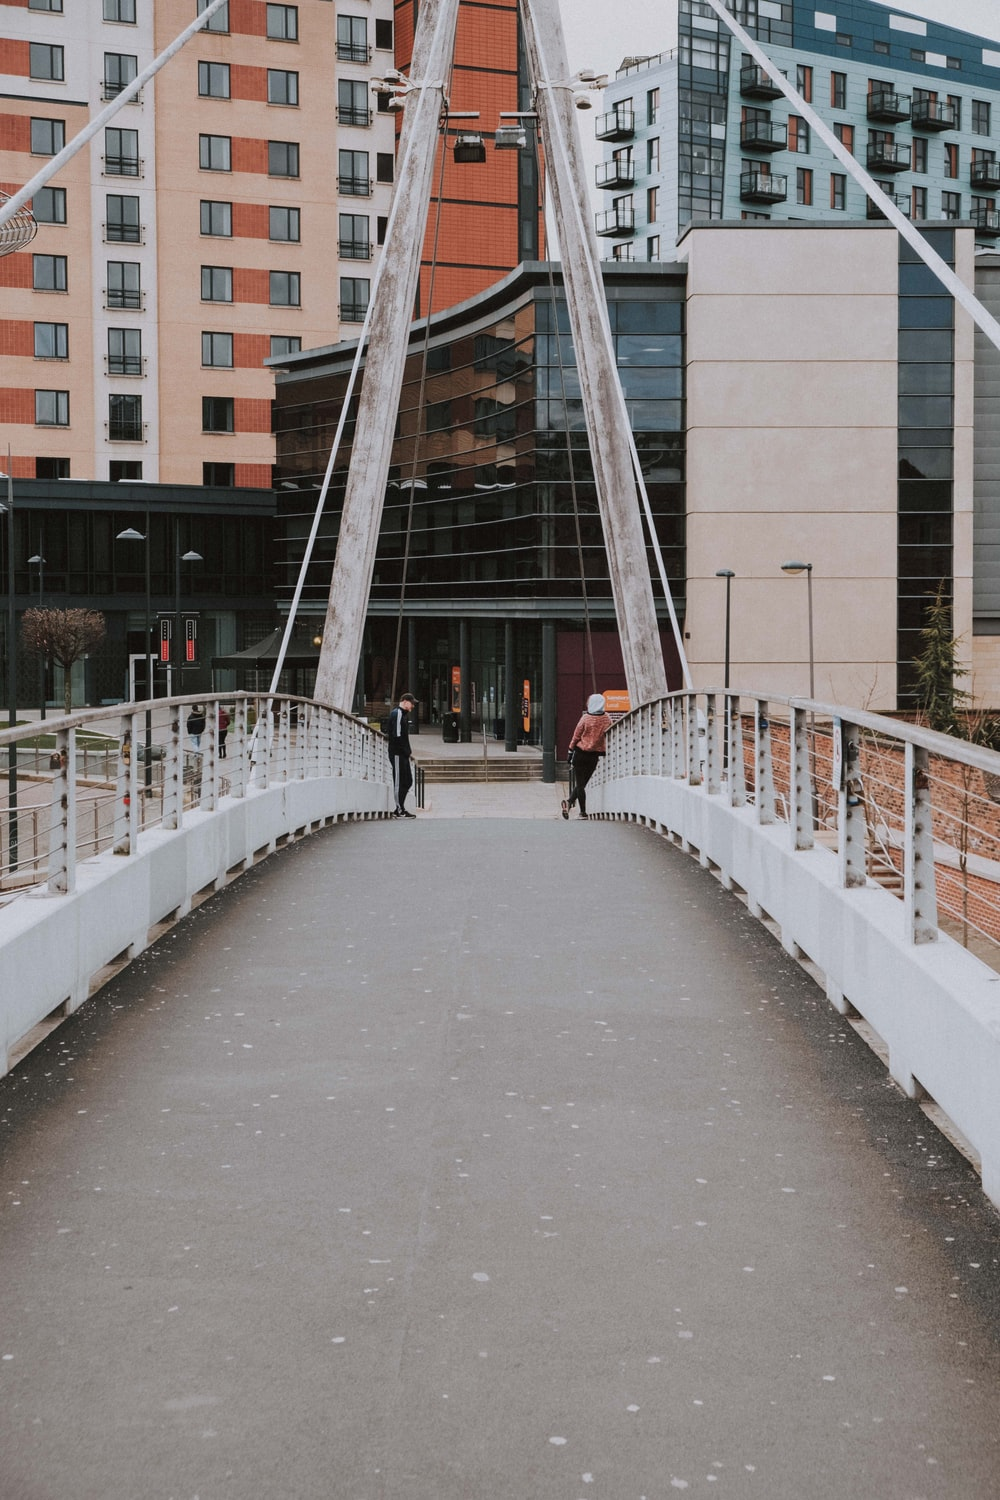 white bridge with people walking on it